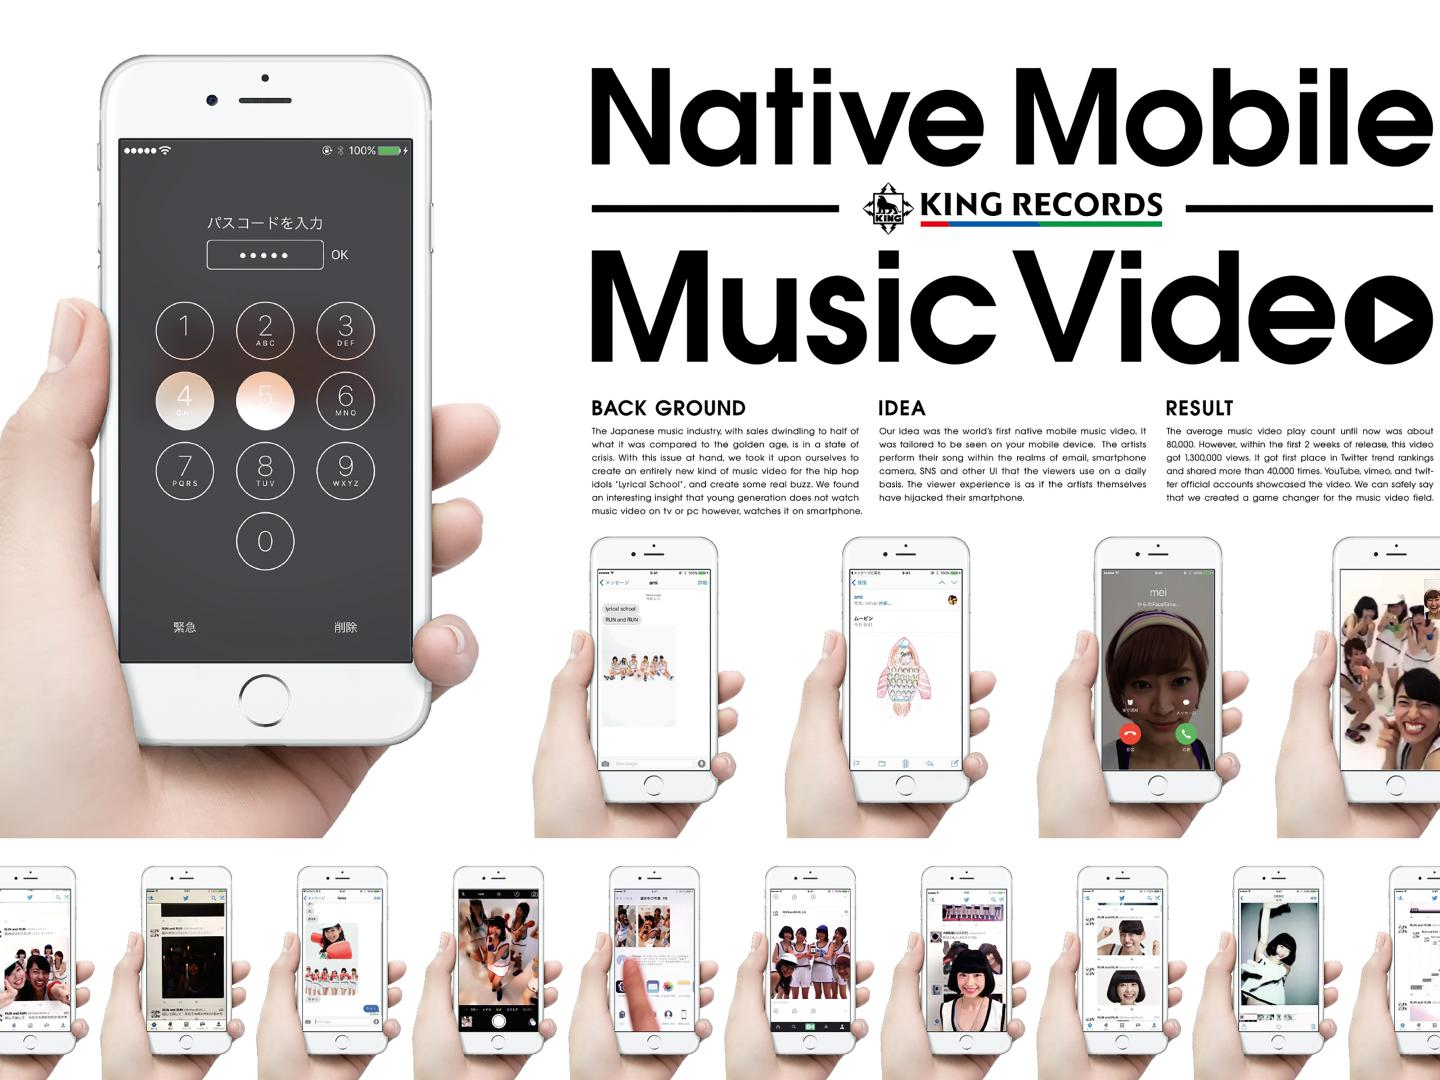 KING RECORDS - Native Mobile Music Video | Clios